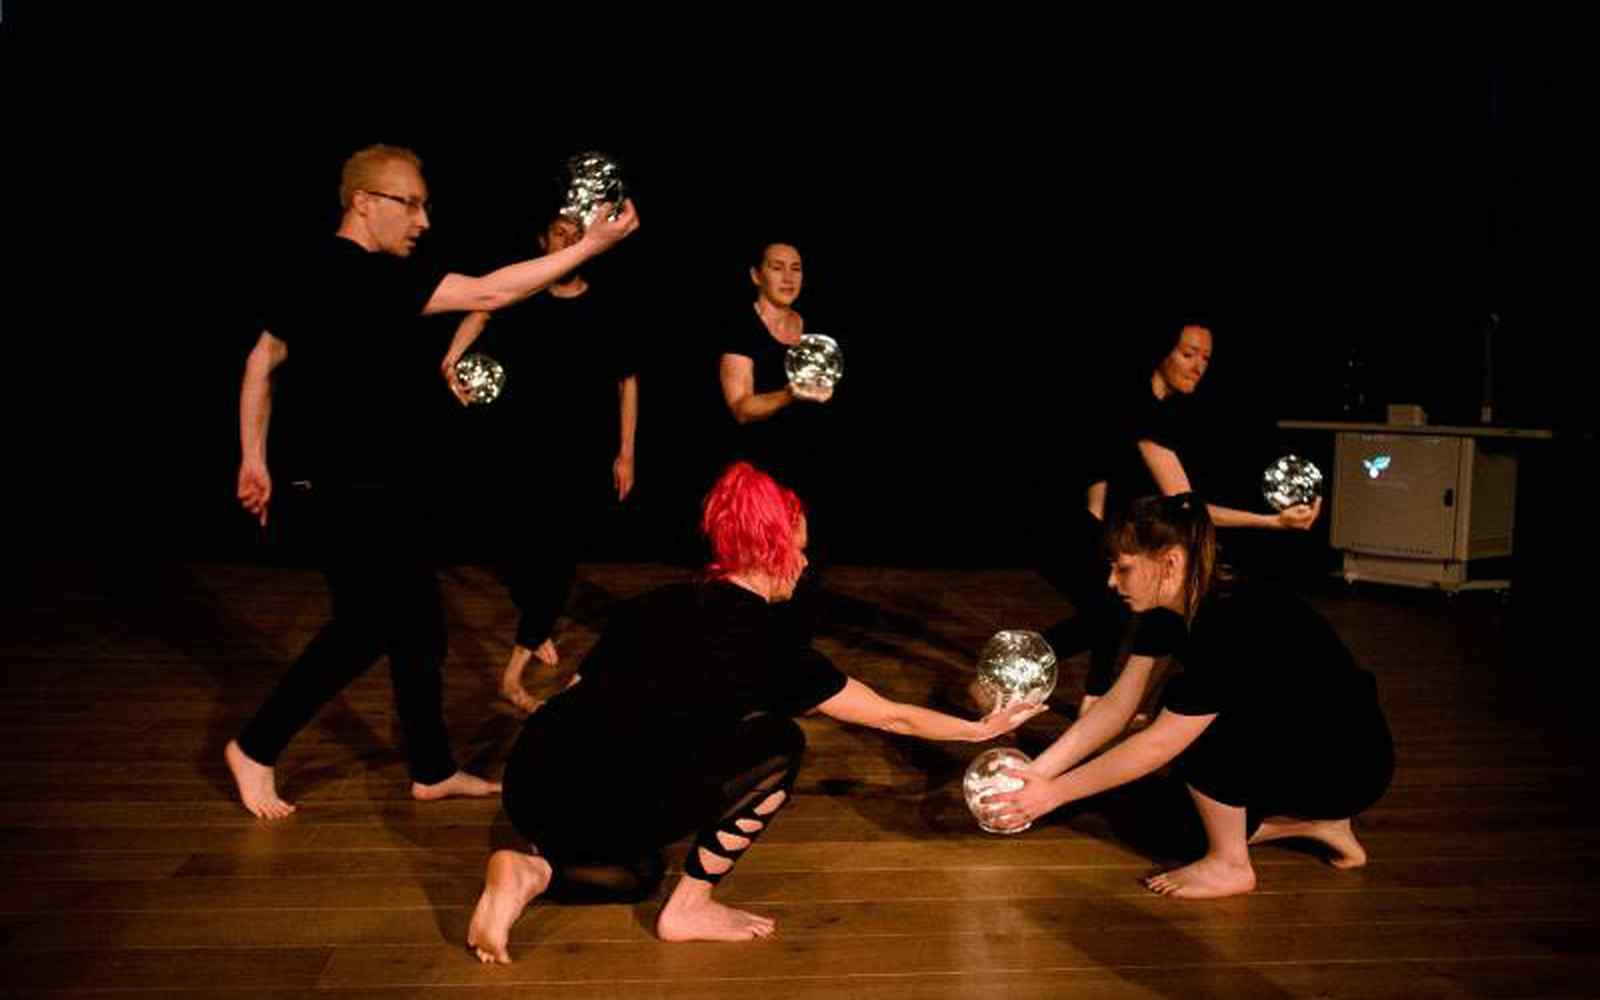 Theatre performers dressed in black, holding lit globes